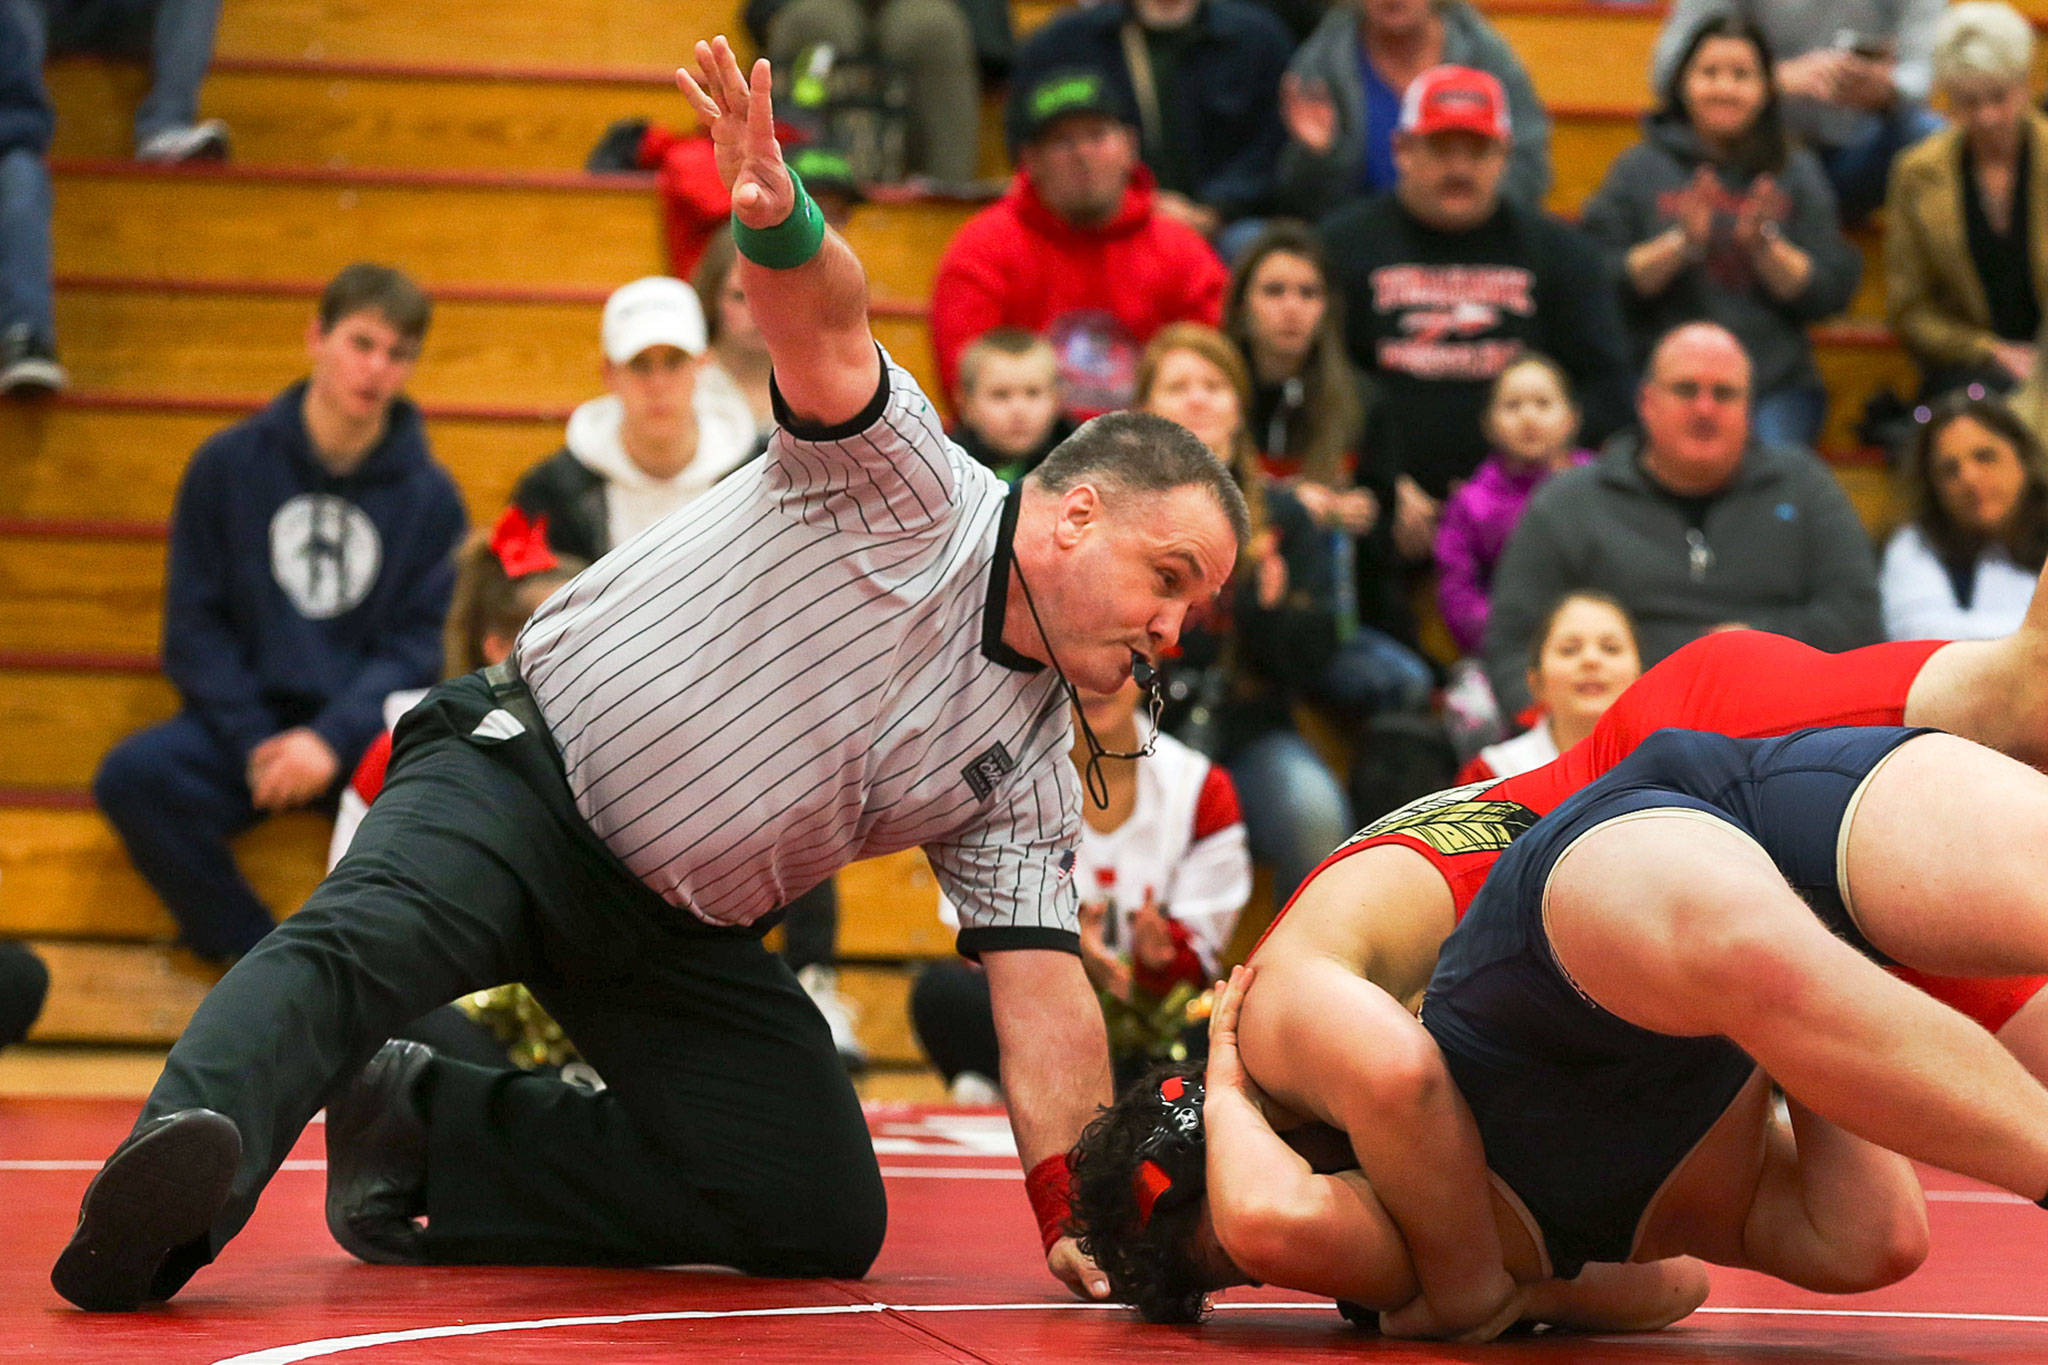 Match official Al Rivers signals to the scorer's table as Marysville Pilchuck's Ikaika Nawelhi looks to pin Arlington's Connor Stockman on Jan. 25 in Marysville. (Kevin Clark / The Daily Herald)